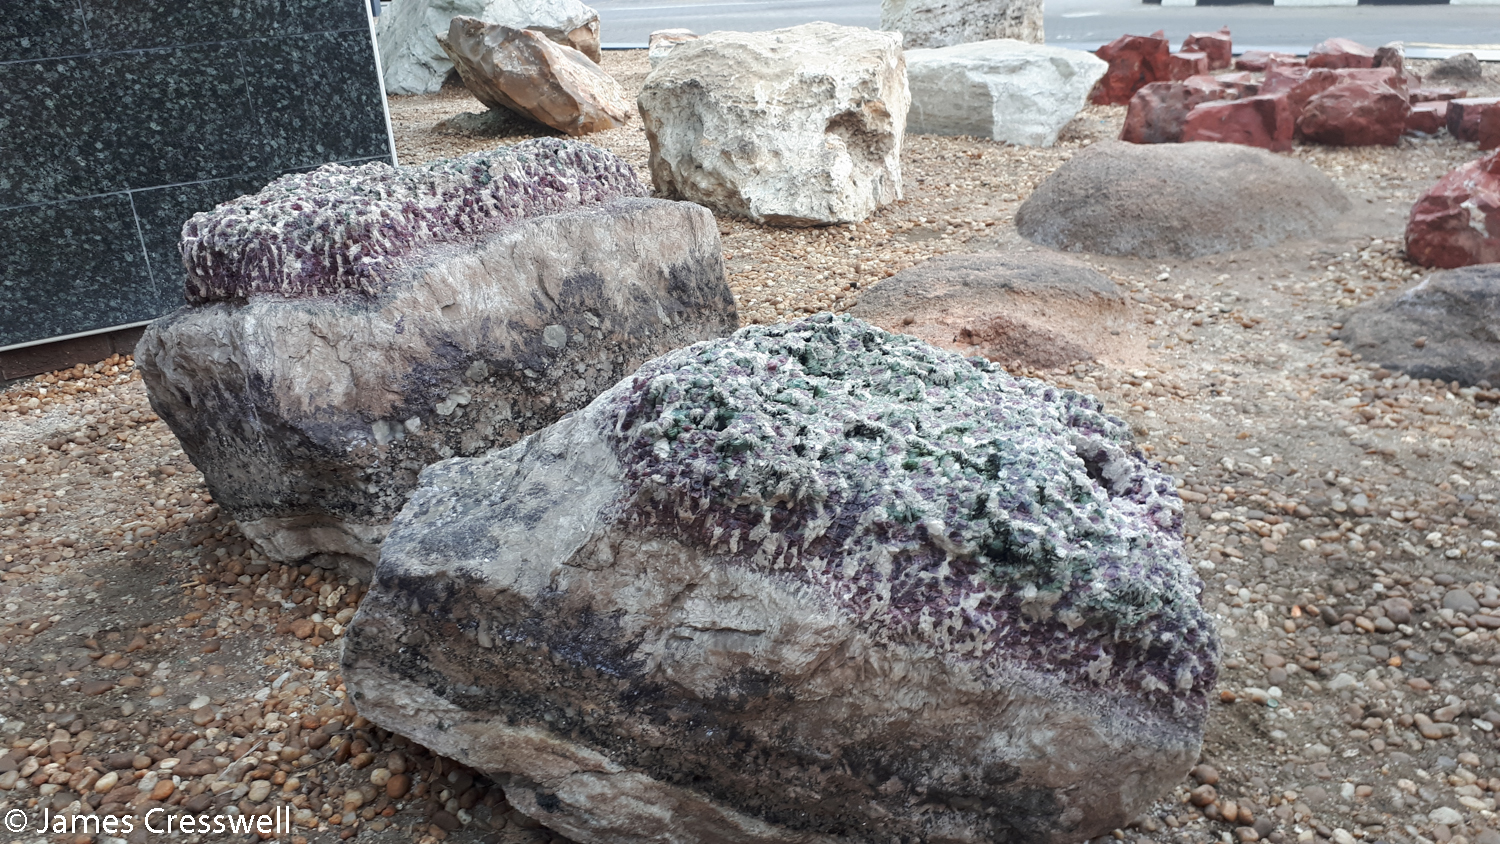 The crystal garden, at the Kristall Gallerie, Swakopmund, Namibia, which had many minerals e.g. tourmaline, amethyst, and flourite inside the pegmatite dykes they were mined from.